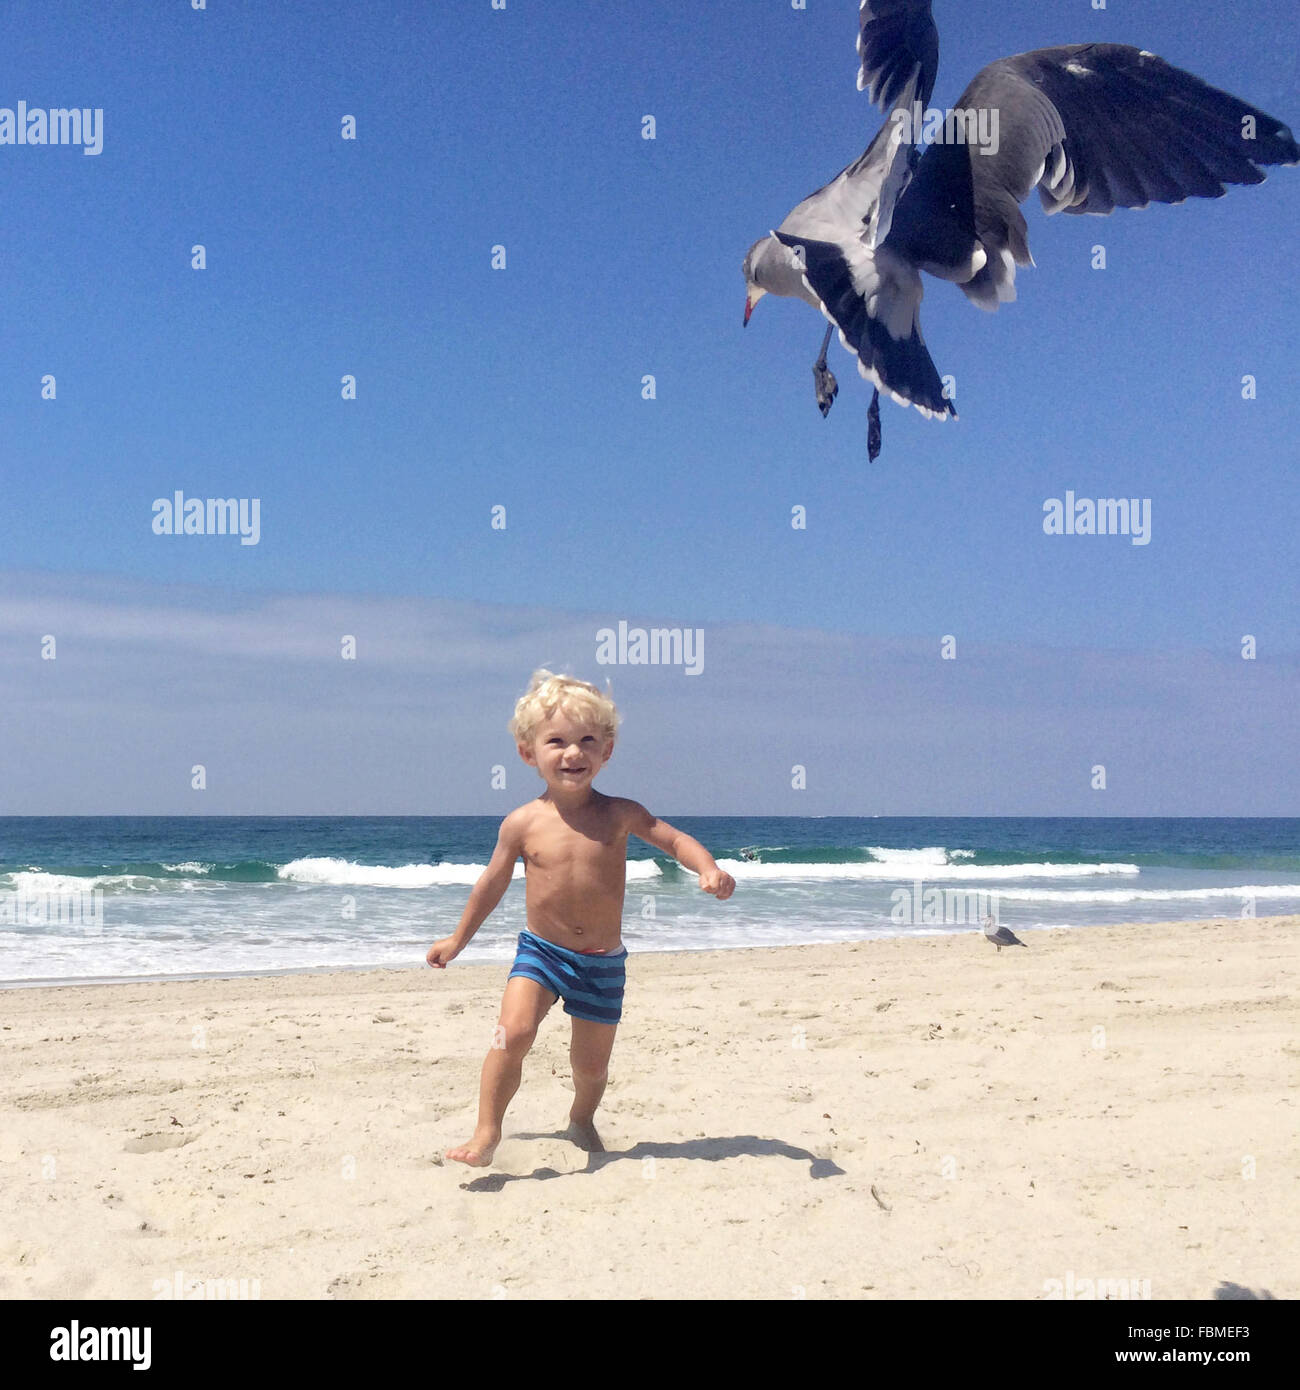 Boy chasing seagull on the beach - Stock Image